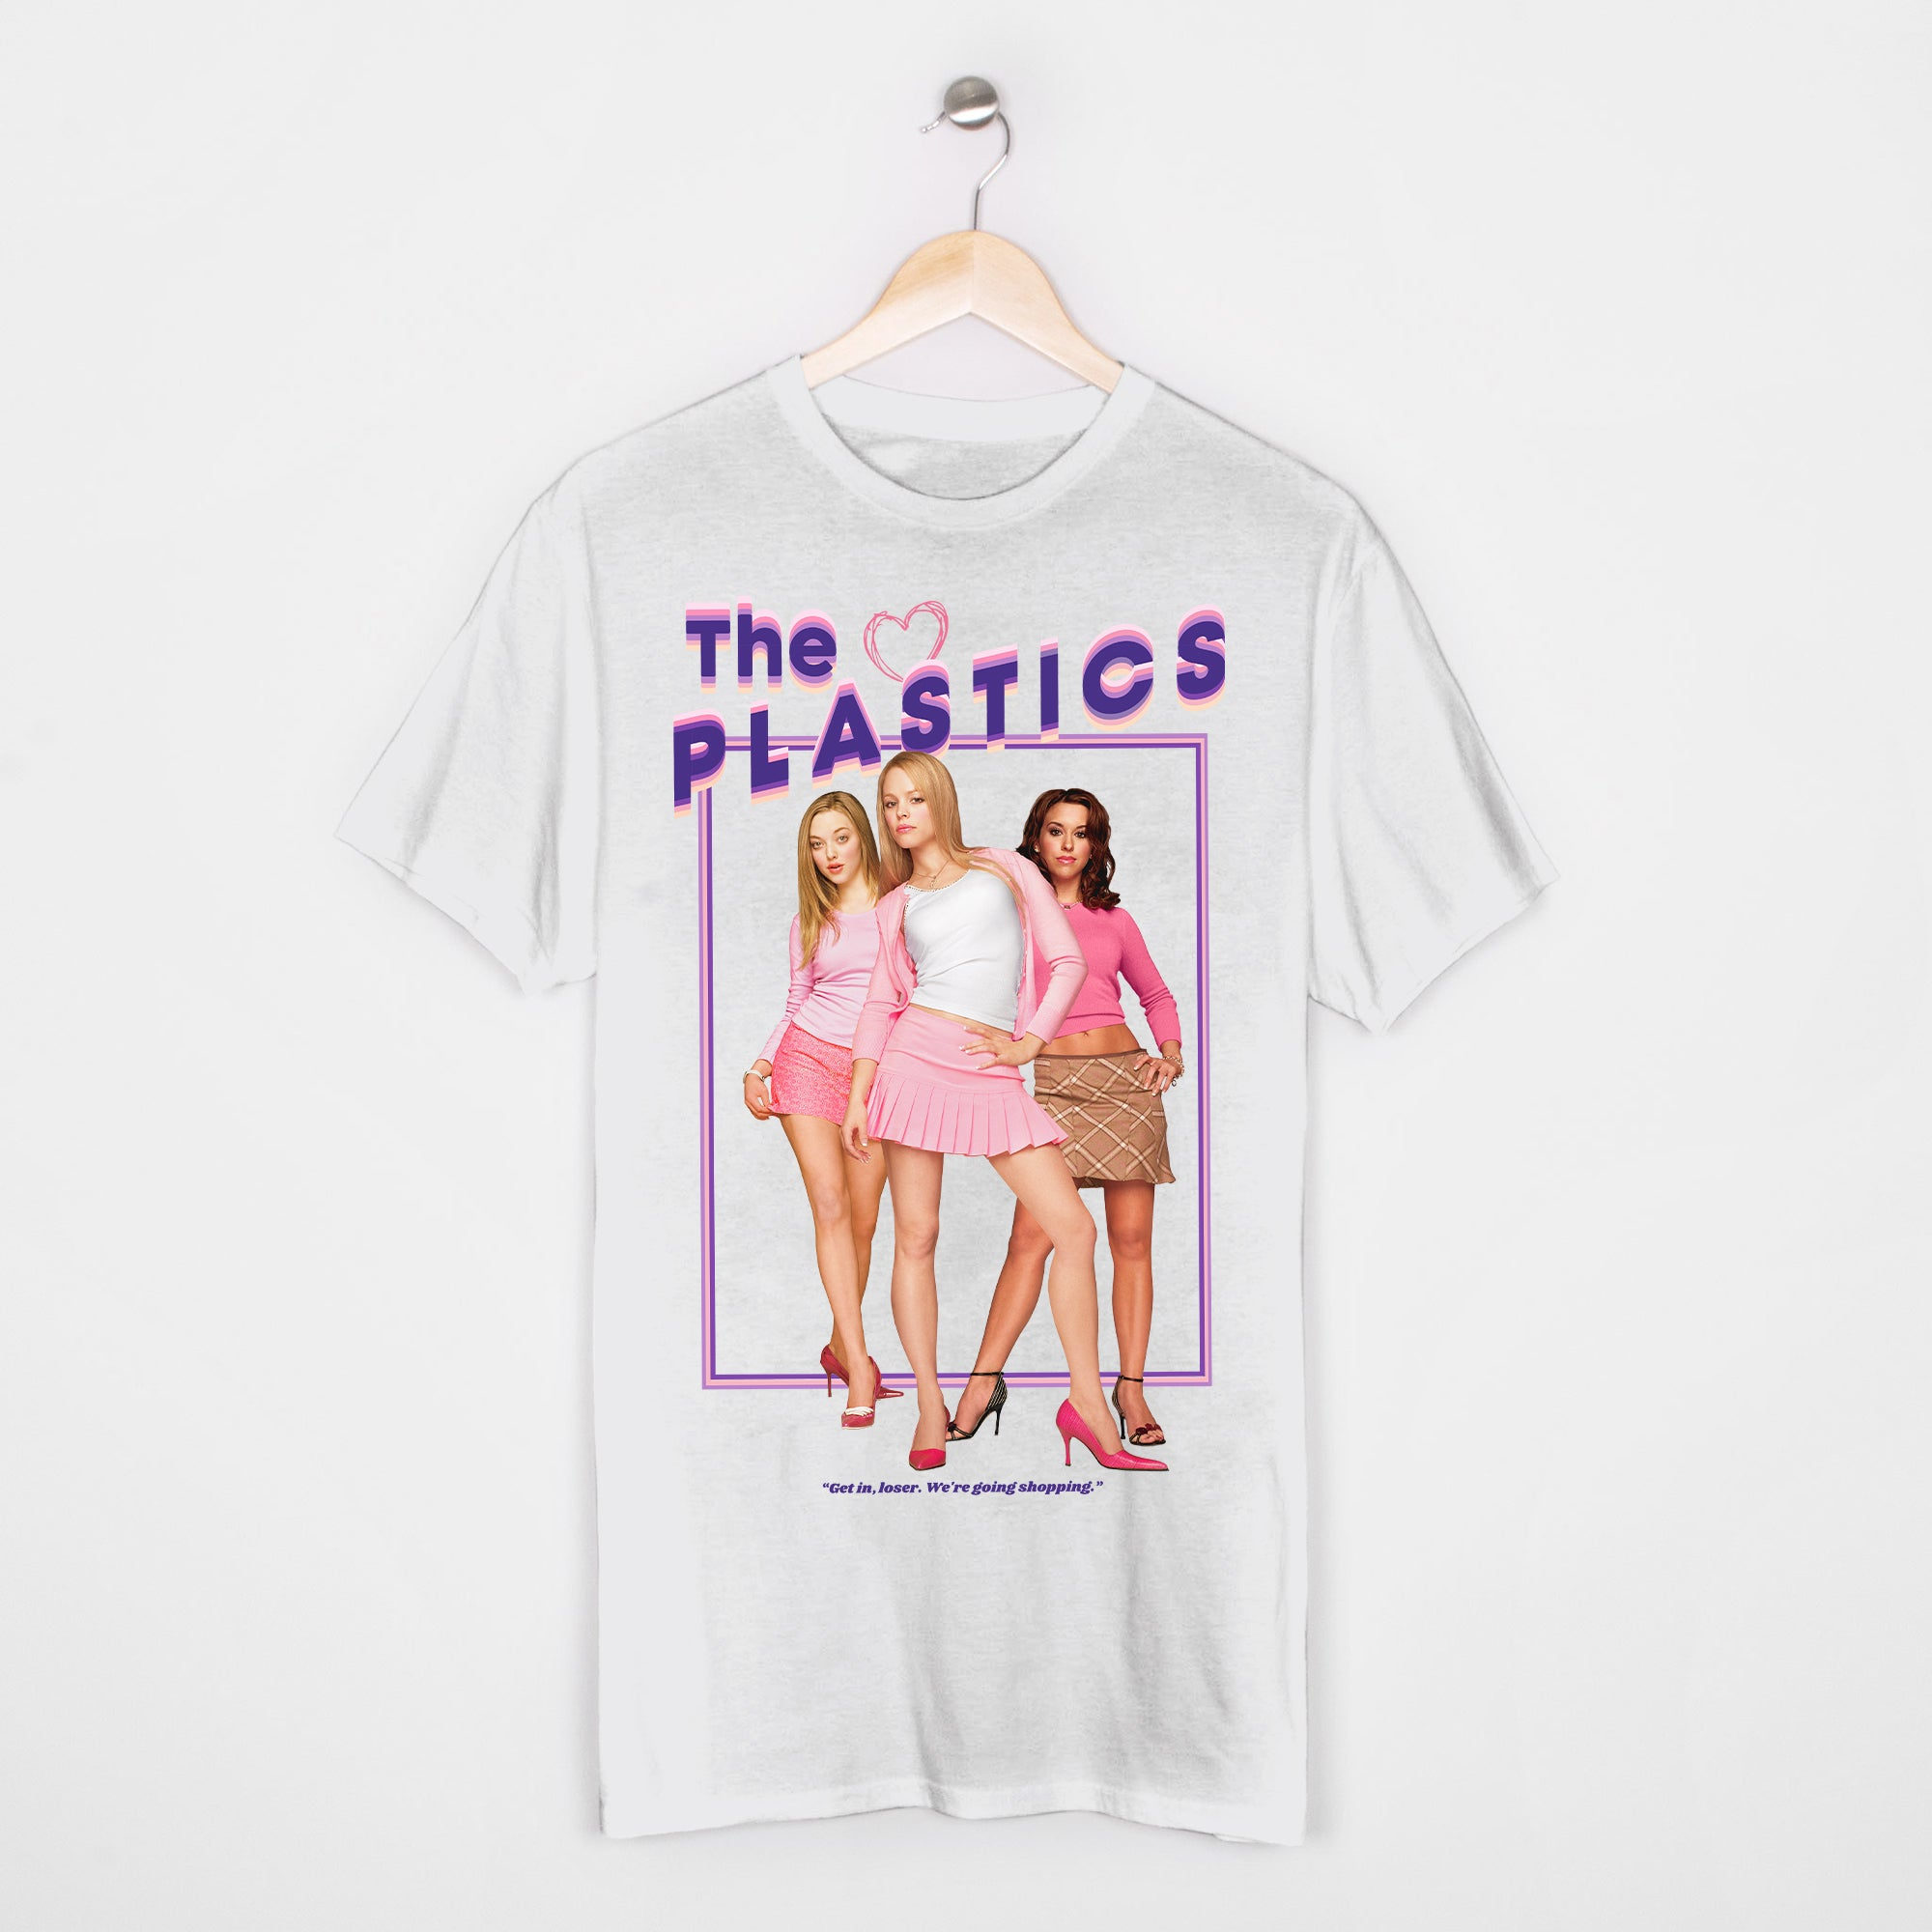 Mean Girls - The Plastics T-Shirt